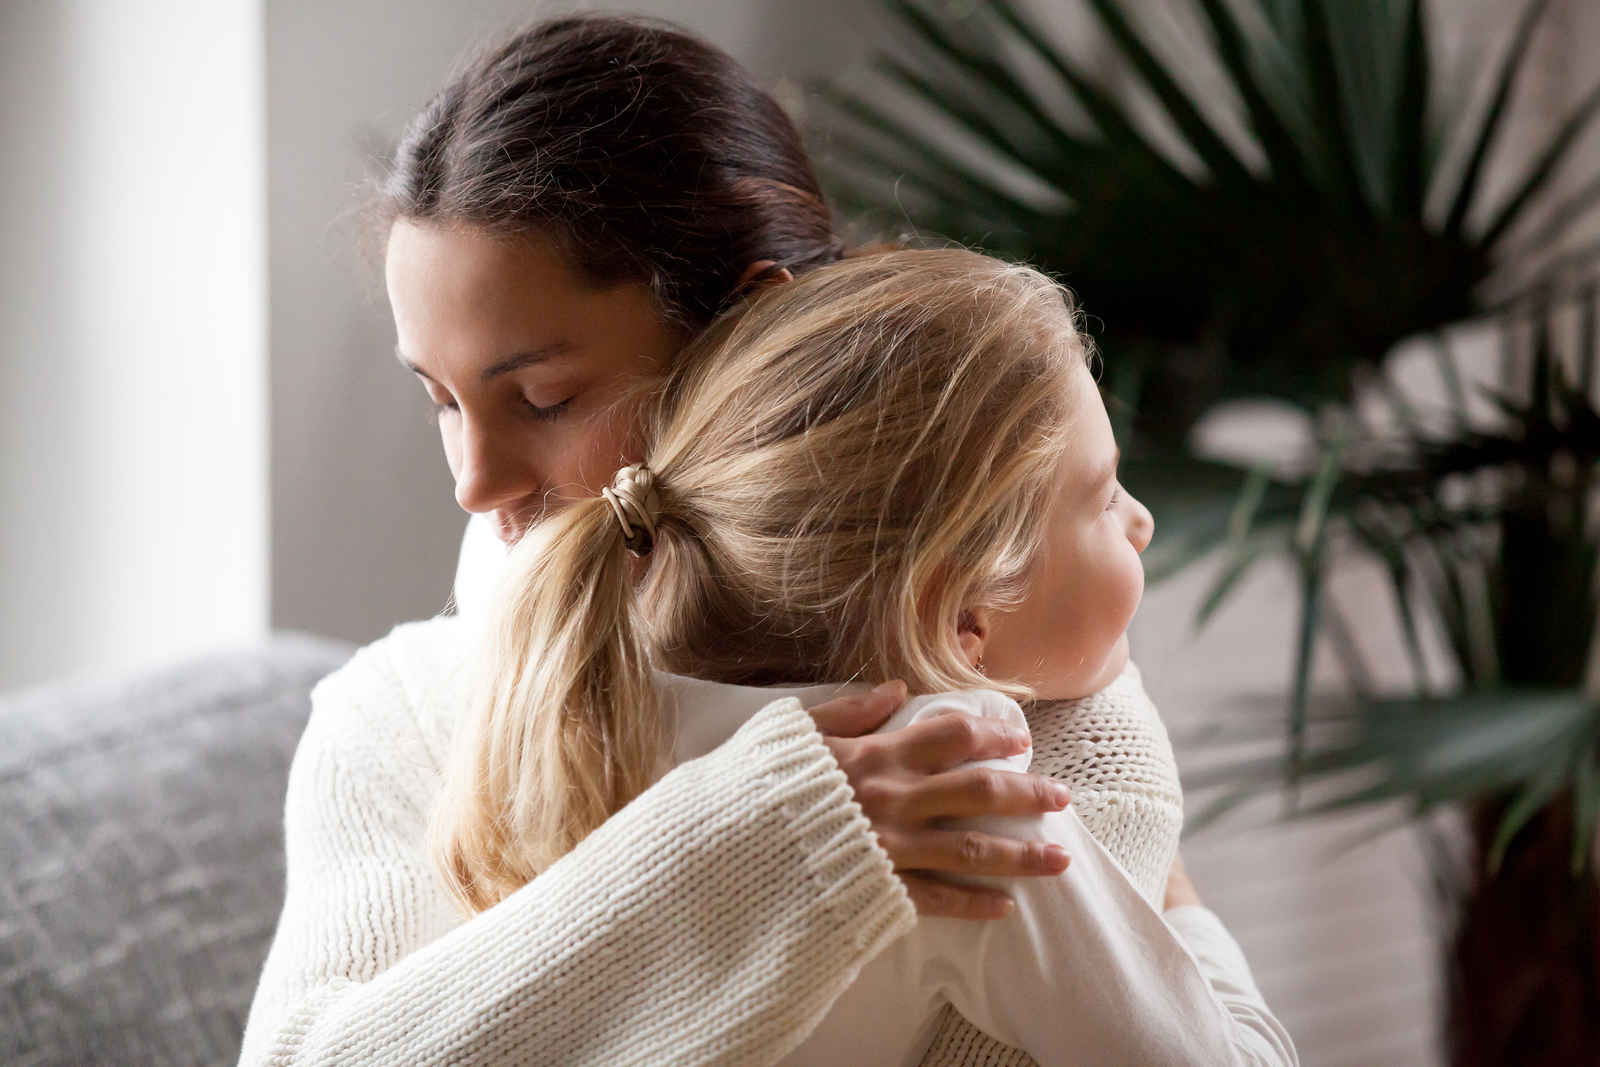 foster care abuse